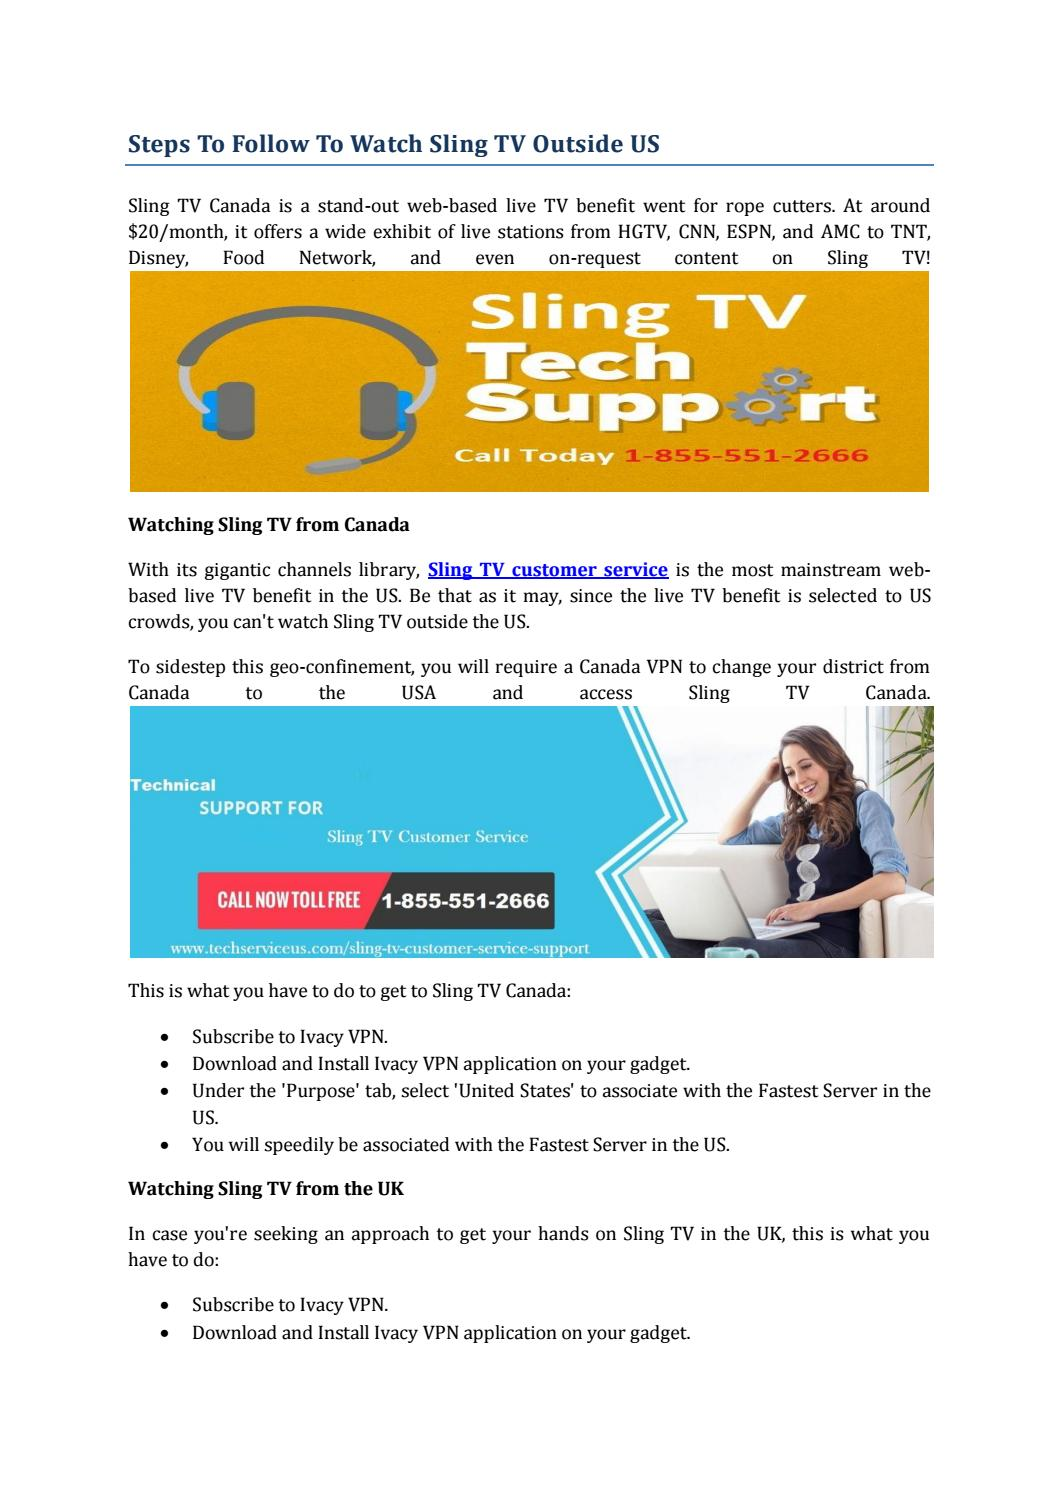 Steps To Follow To Watch Sling TV Outside US by Warner Trinh